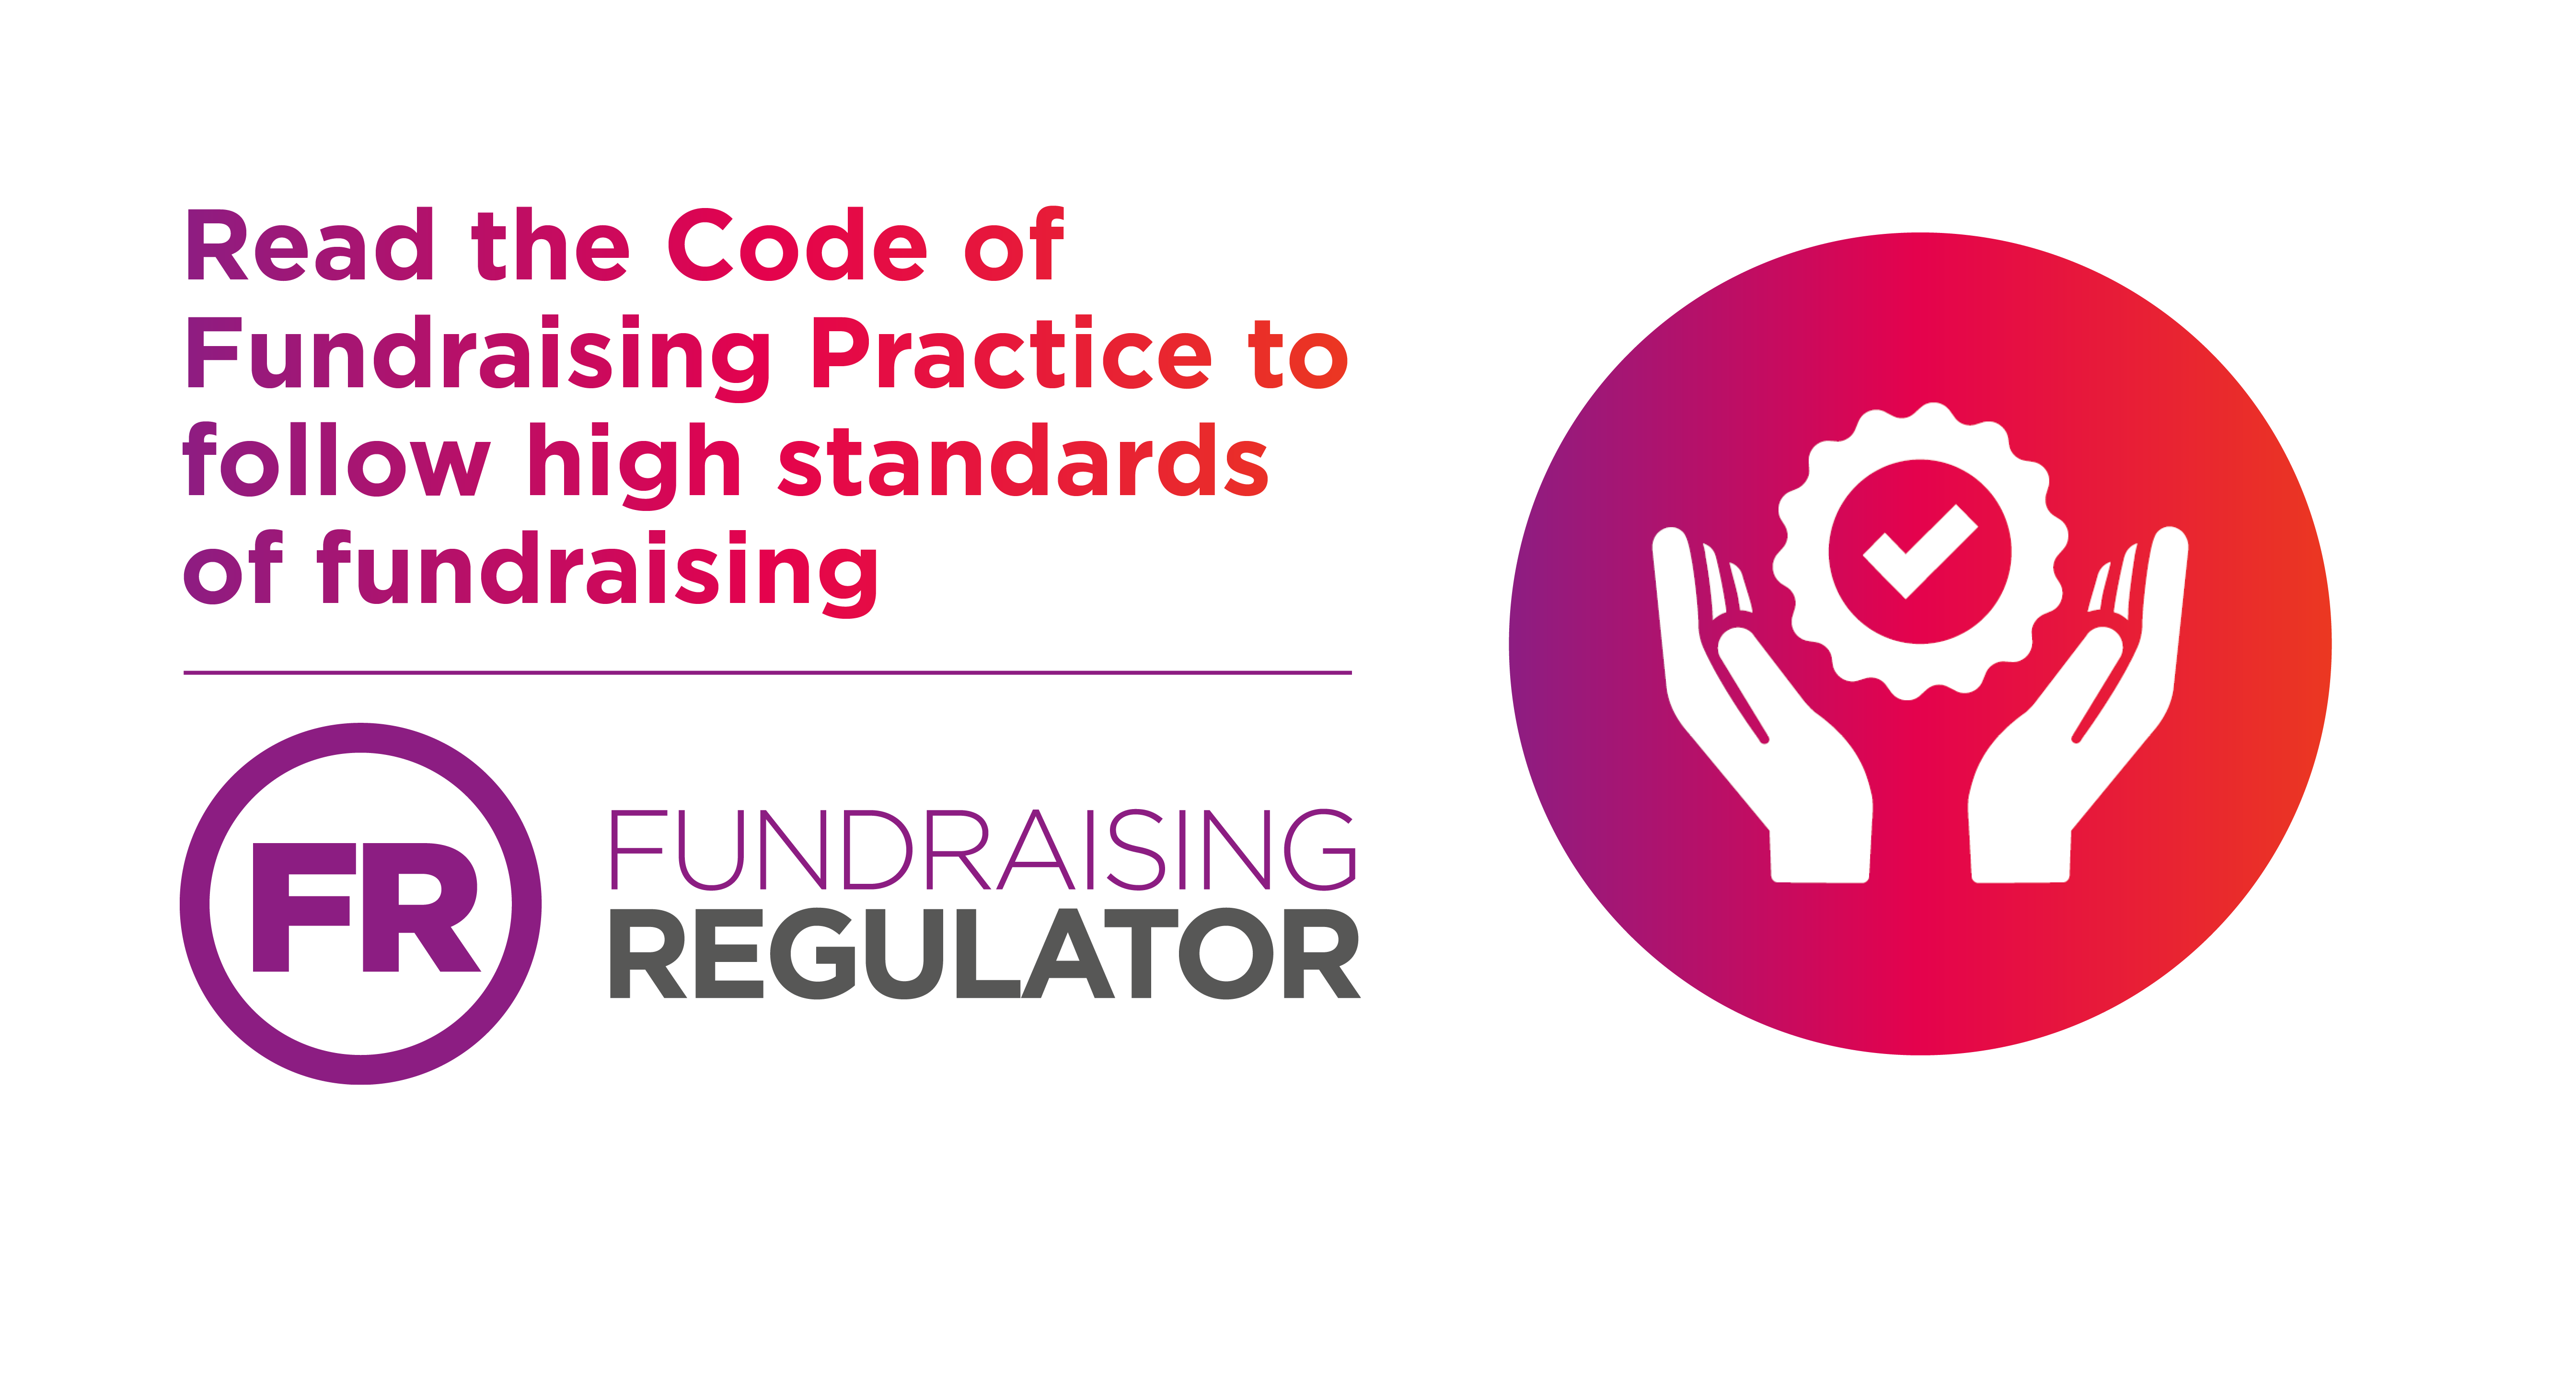 Read the Code of Fundraising Practice to follow high standards of fundraising